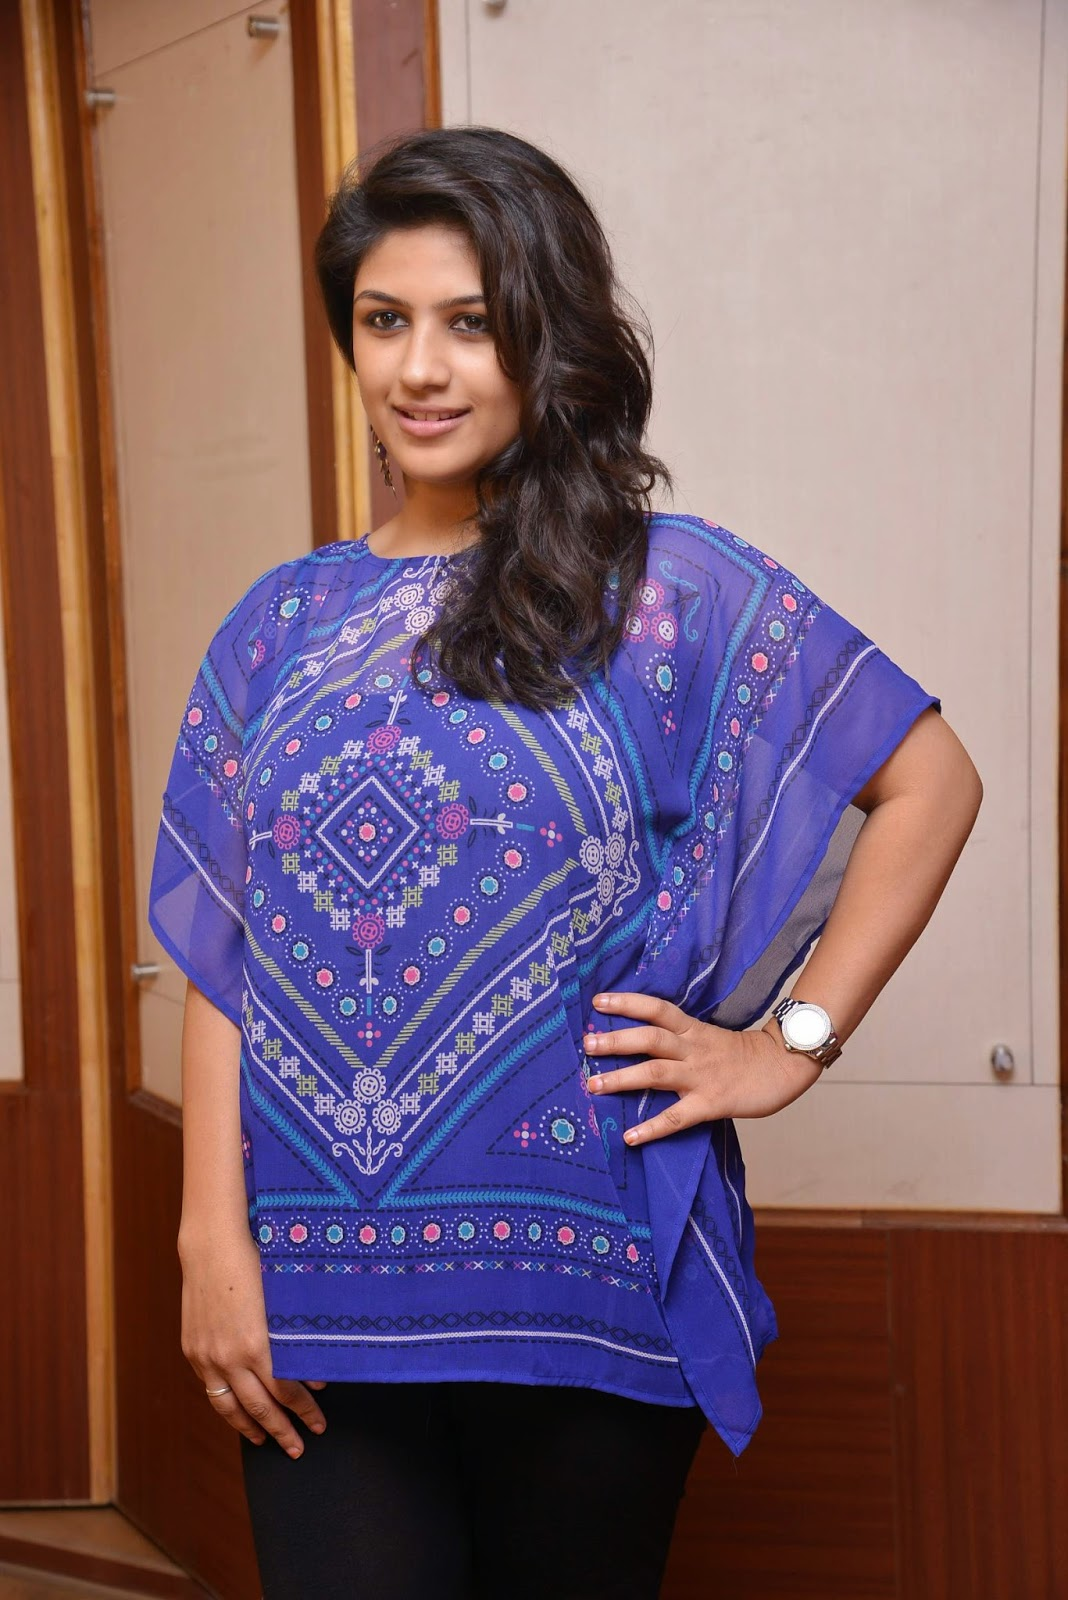 Actress Supriya Aysola Latest Cute Hot Exclusive Blue Top Dress Spicy Photos Gallery At Bhoo Telugu Movie Press Meet